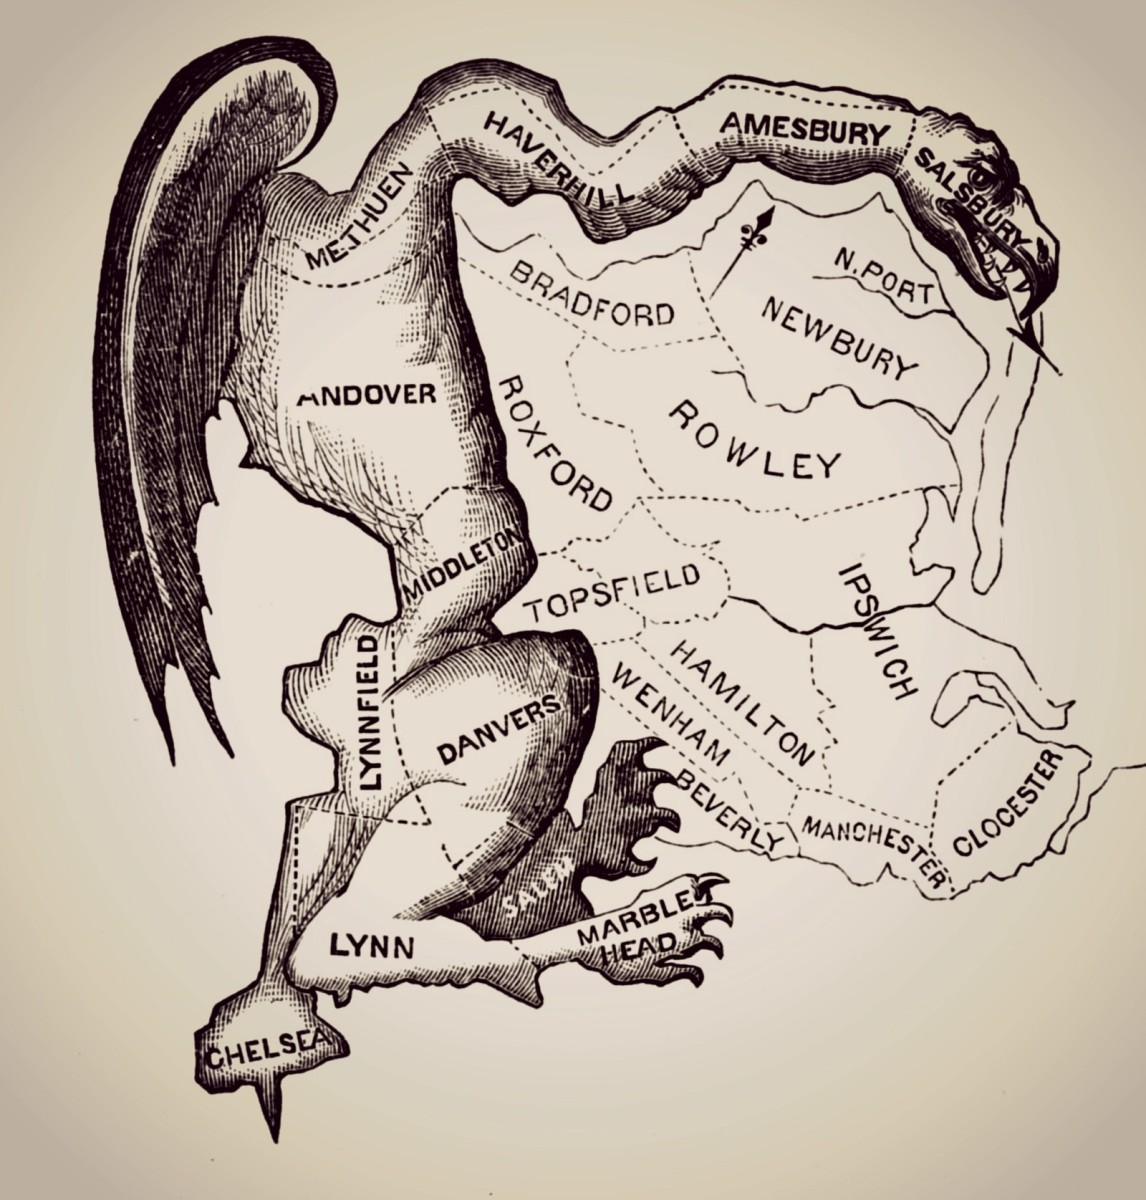 Printed in March 1812, this political cartoon came in reaction to the newly drawn state senate election district of South Essex created by the Massachusetts legislature.